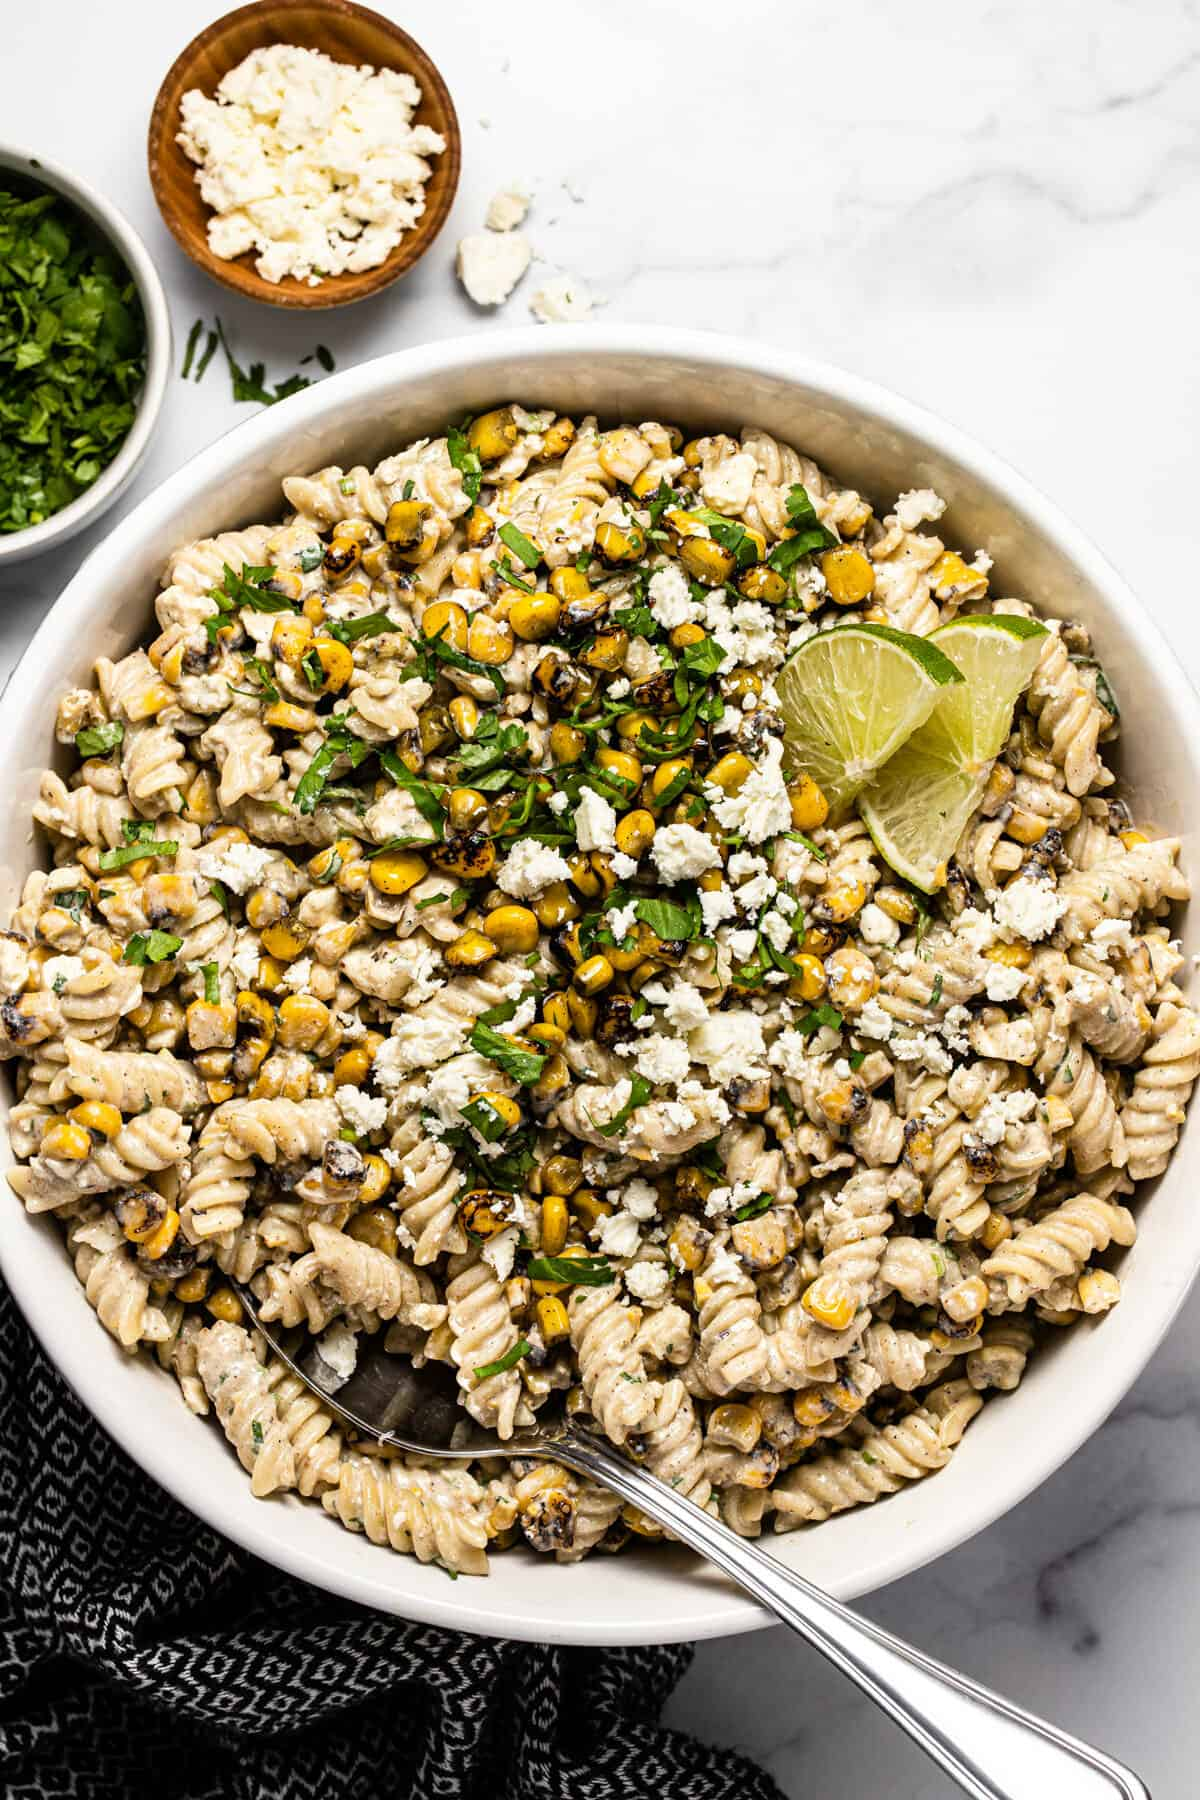 Overhead shot of a white bowl filled with Mexican street corn pasta salad garnished with fresh cilantro